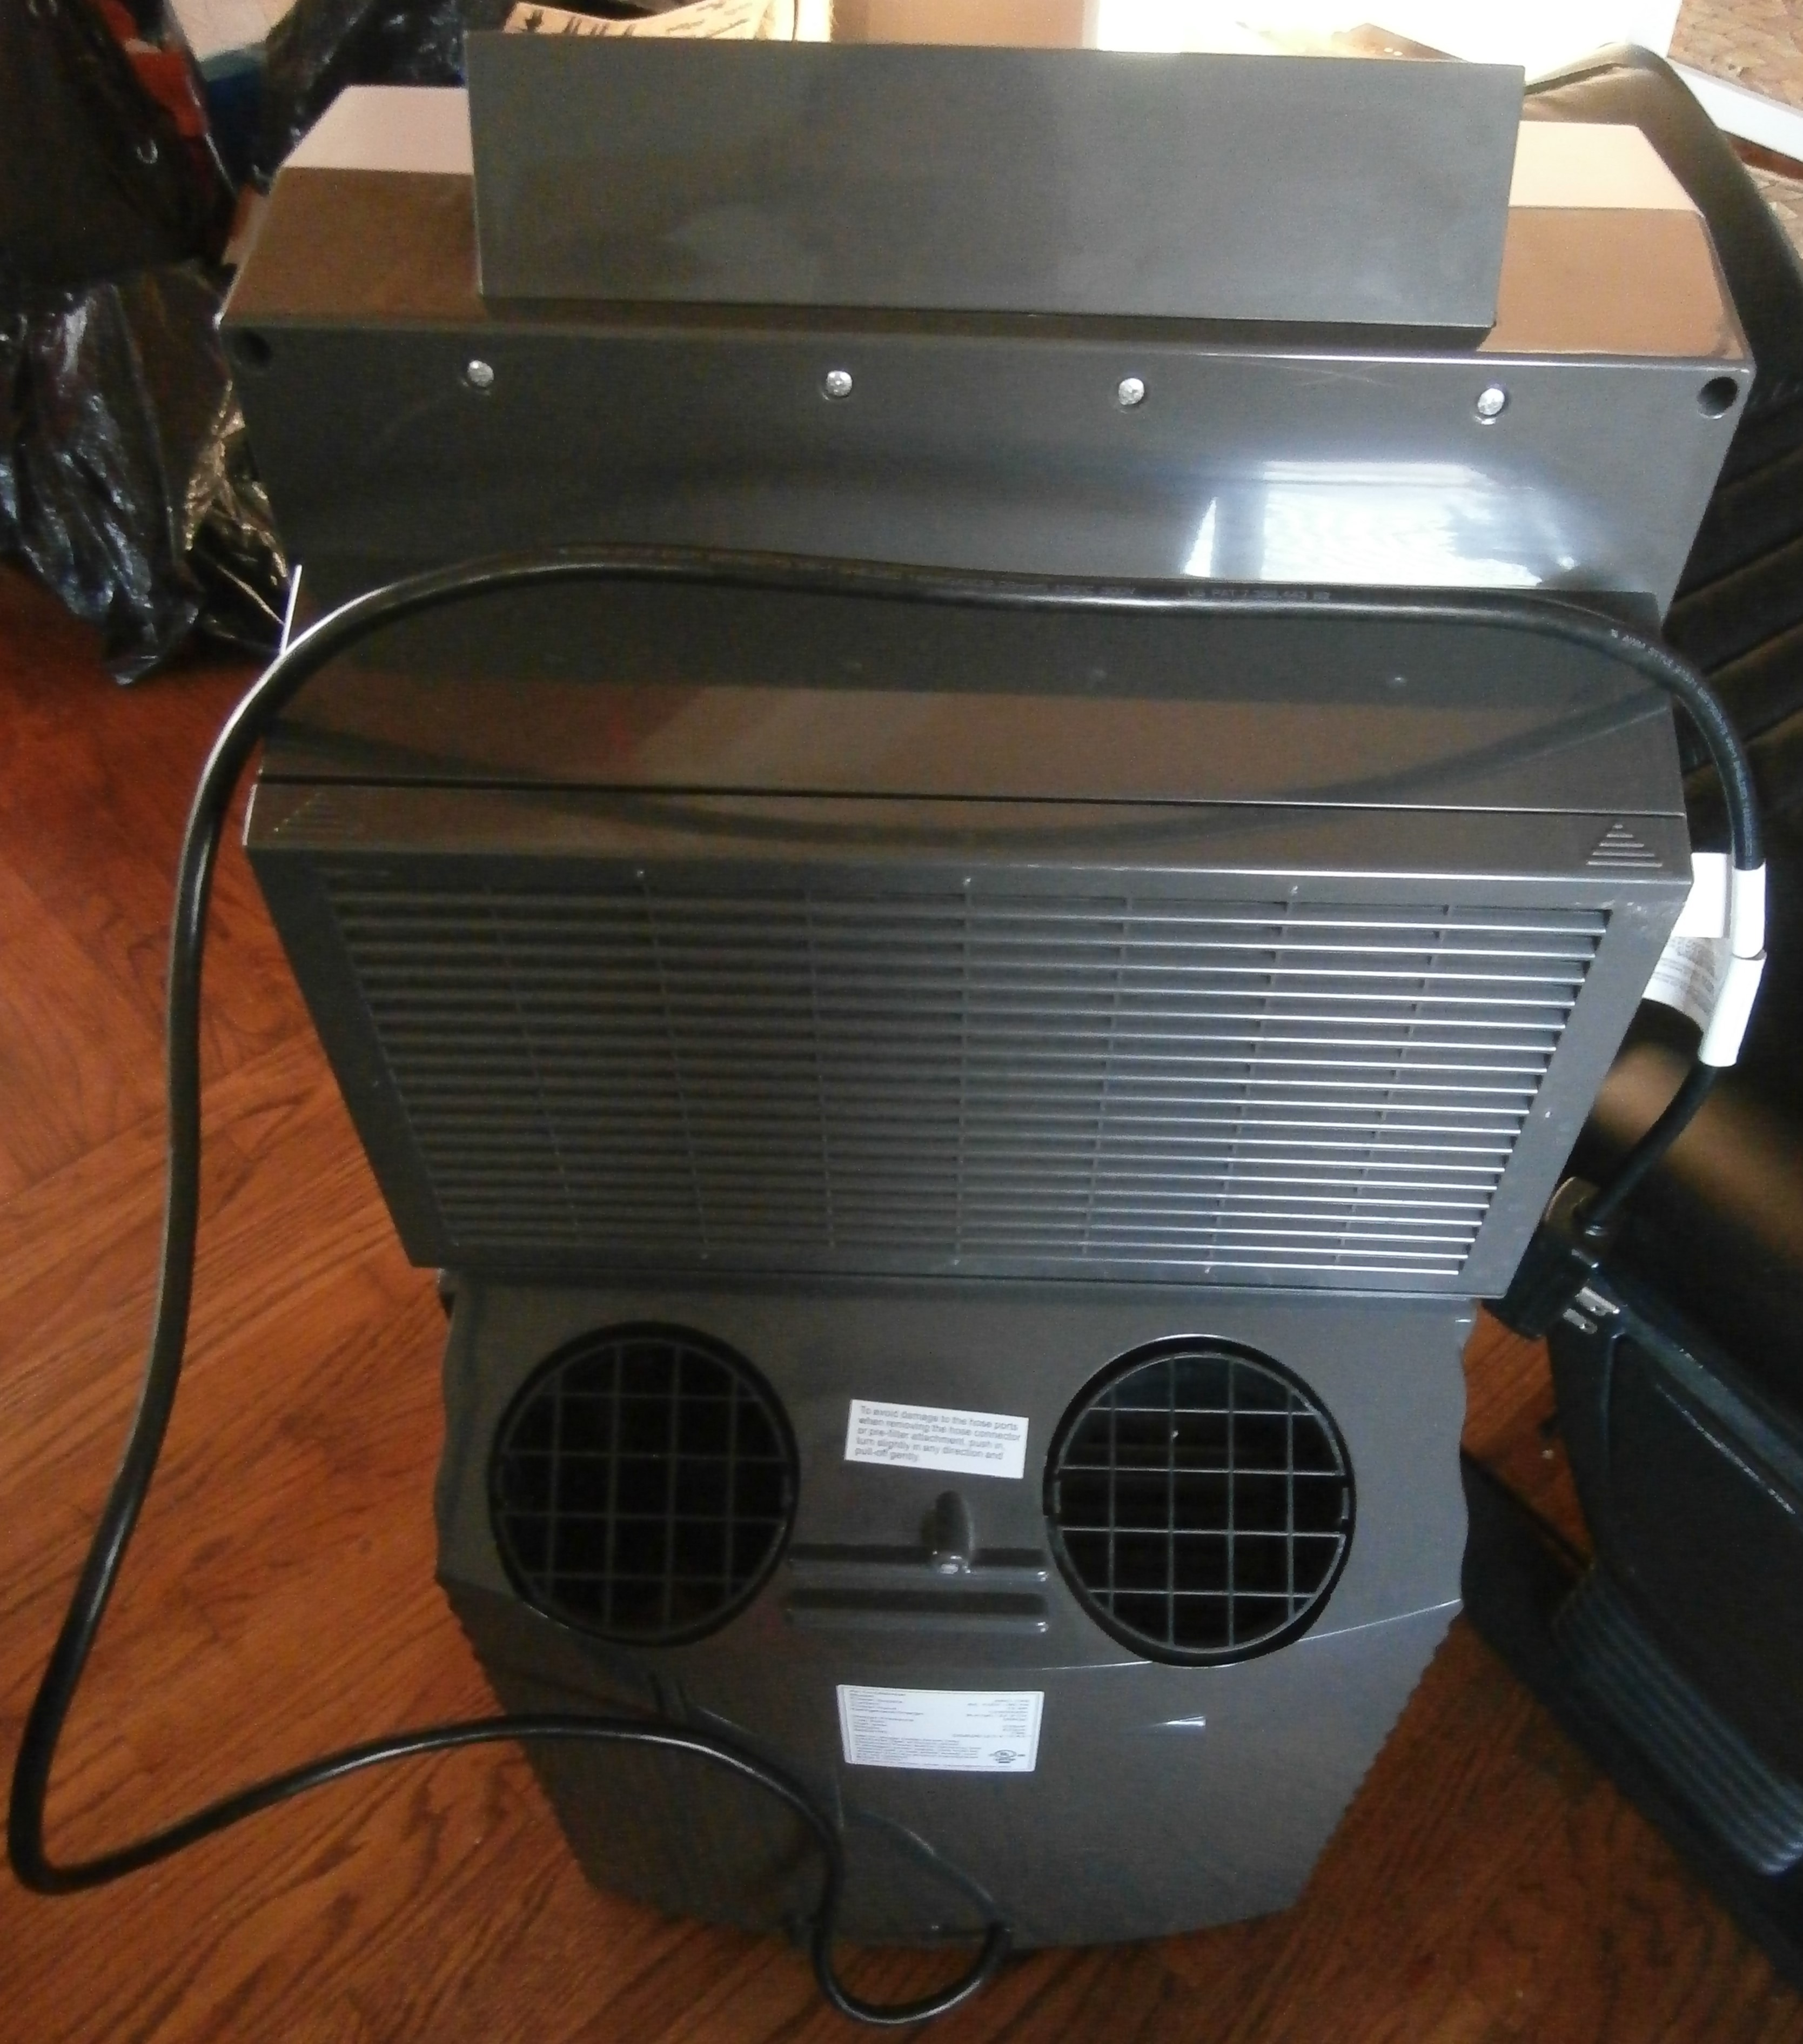 Portable Air Conditioner High End Whynter ARC-14S